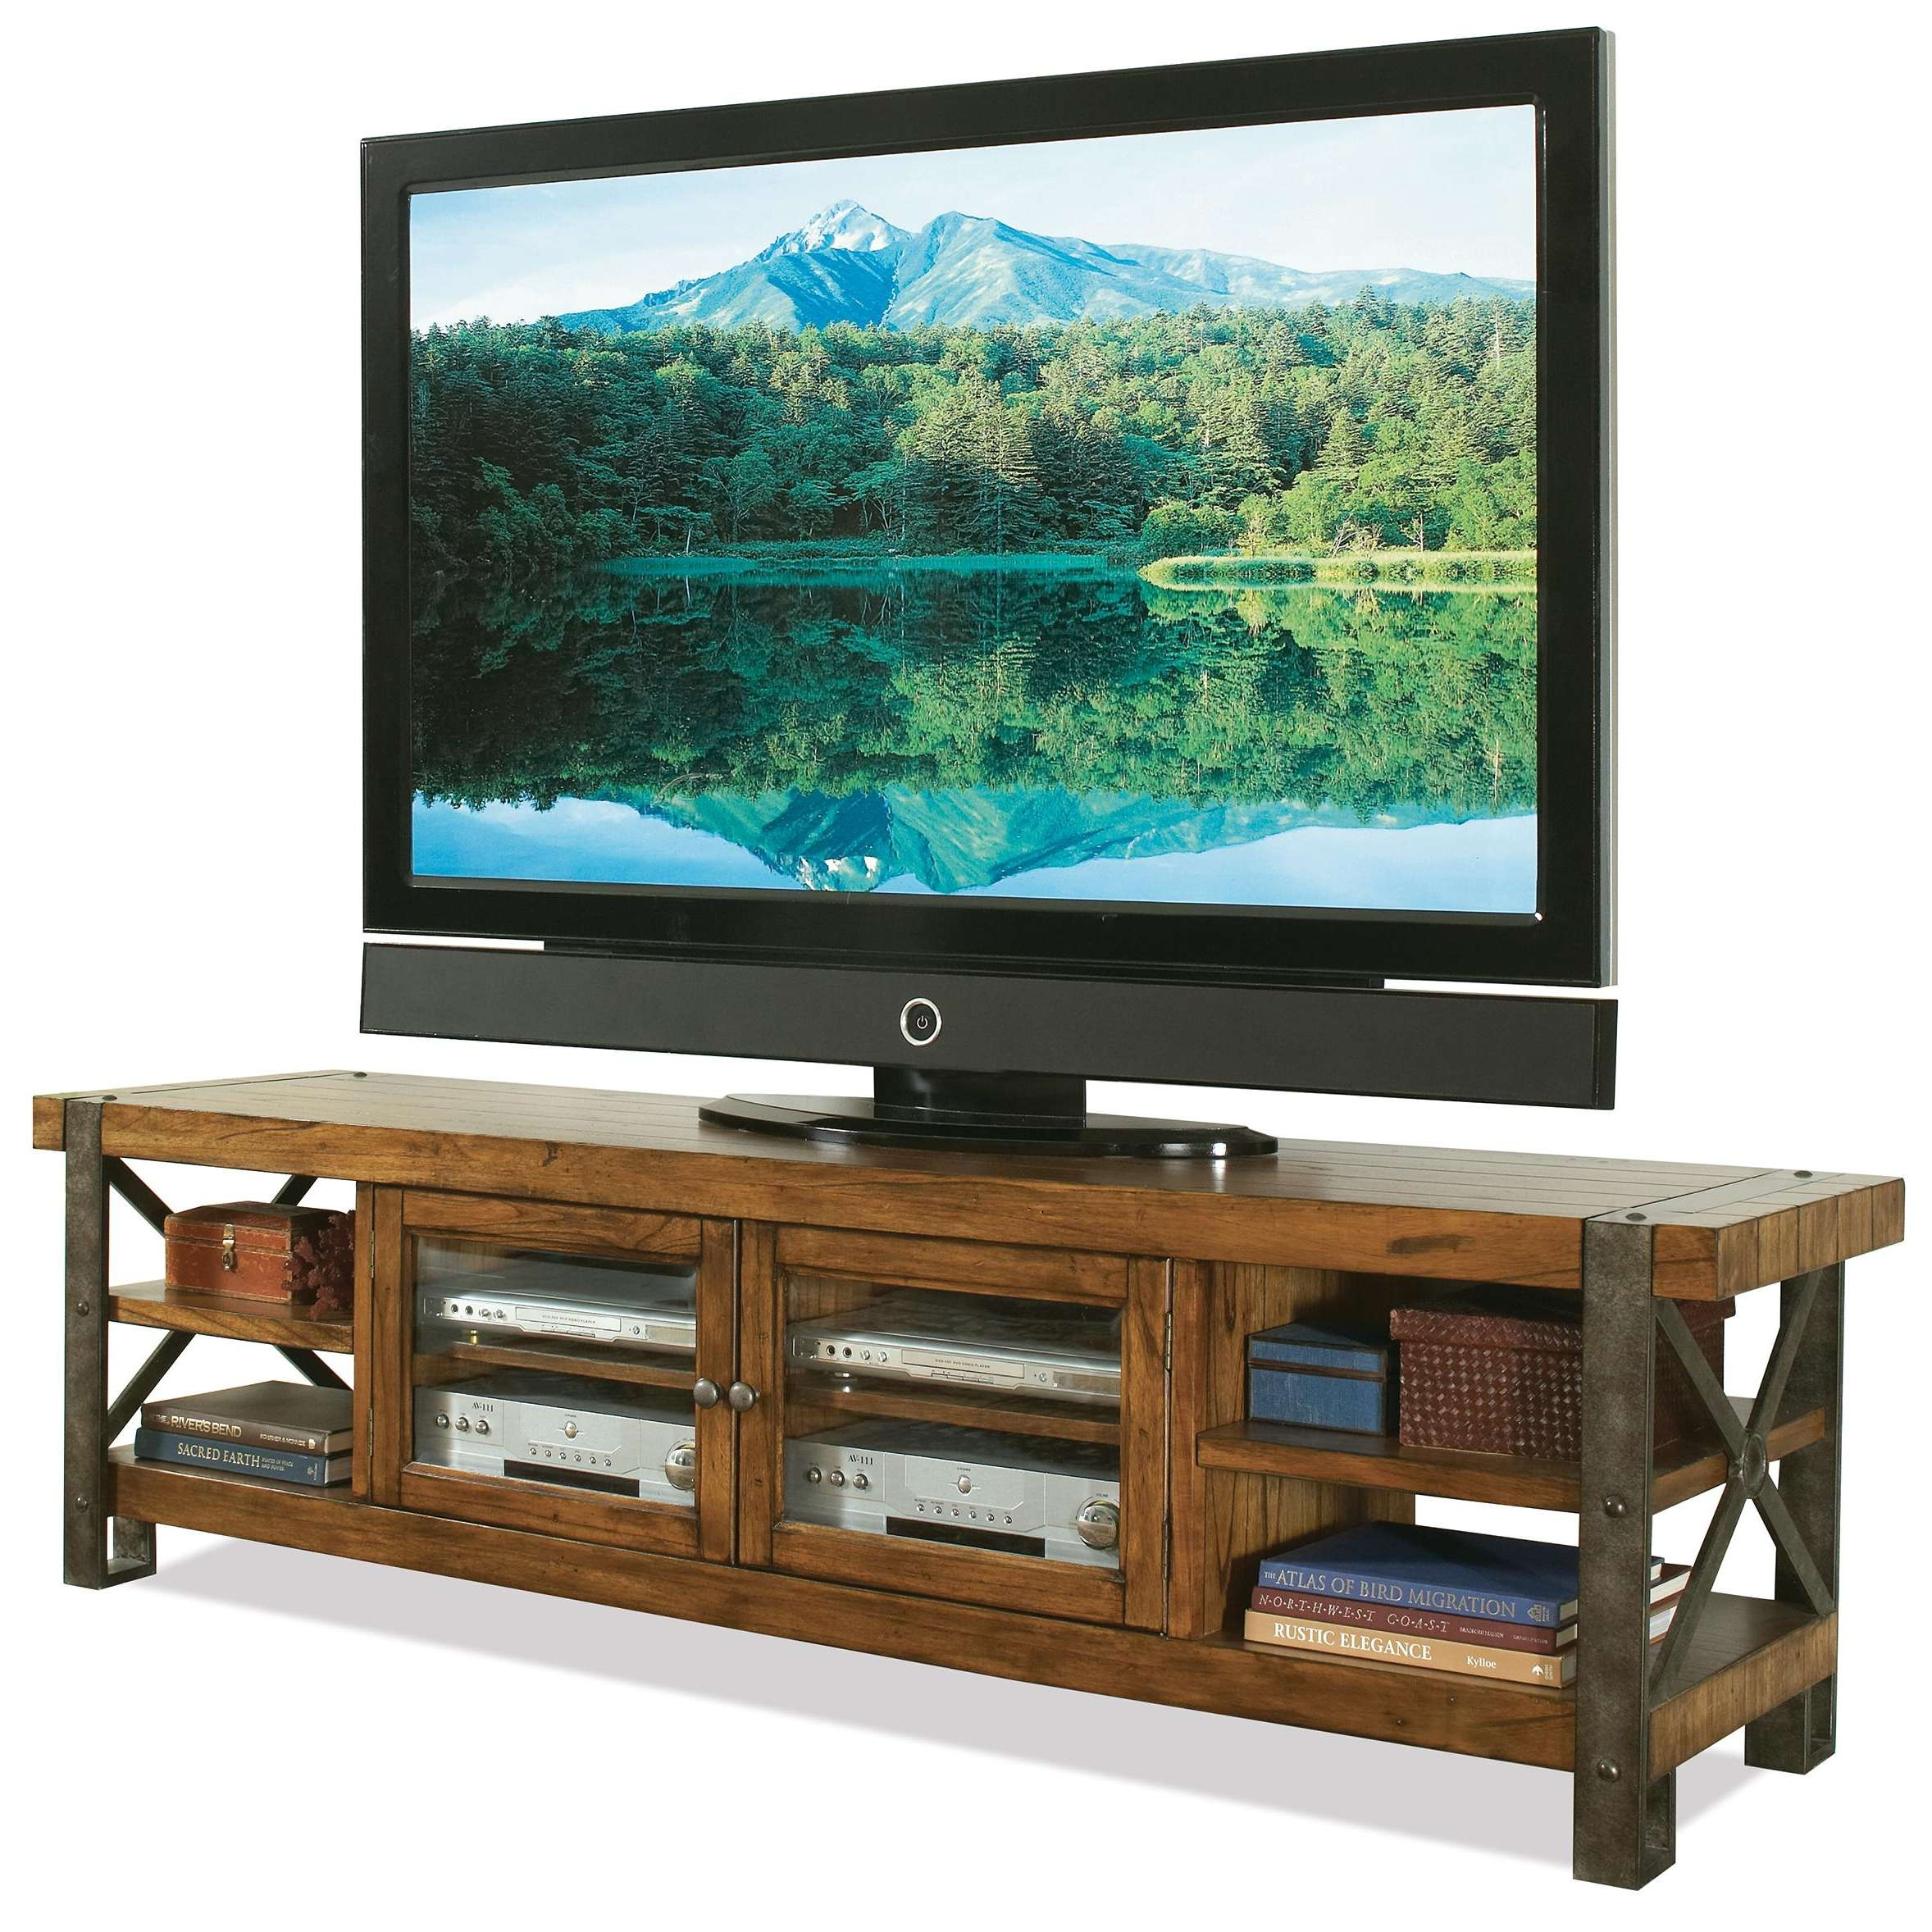 Tv : Special Rustic Wood Tv Stand Beautiful Rustic Tv Cabinets 12 With Regard To Rustic Pine Tv Cabinets (View 20 of 20)